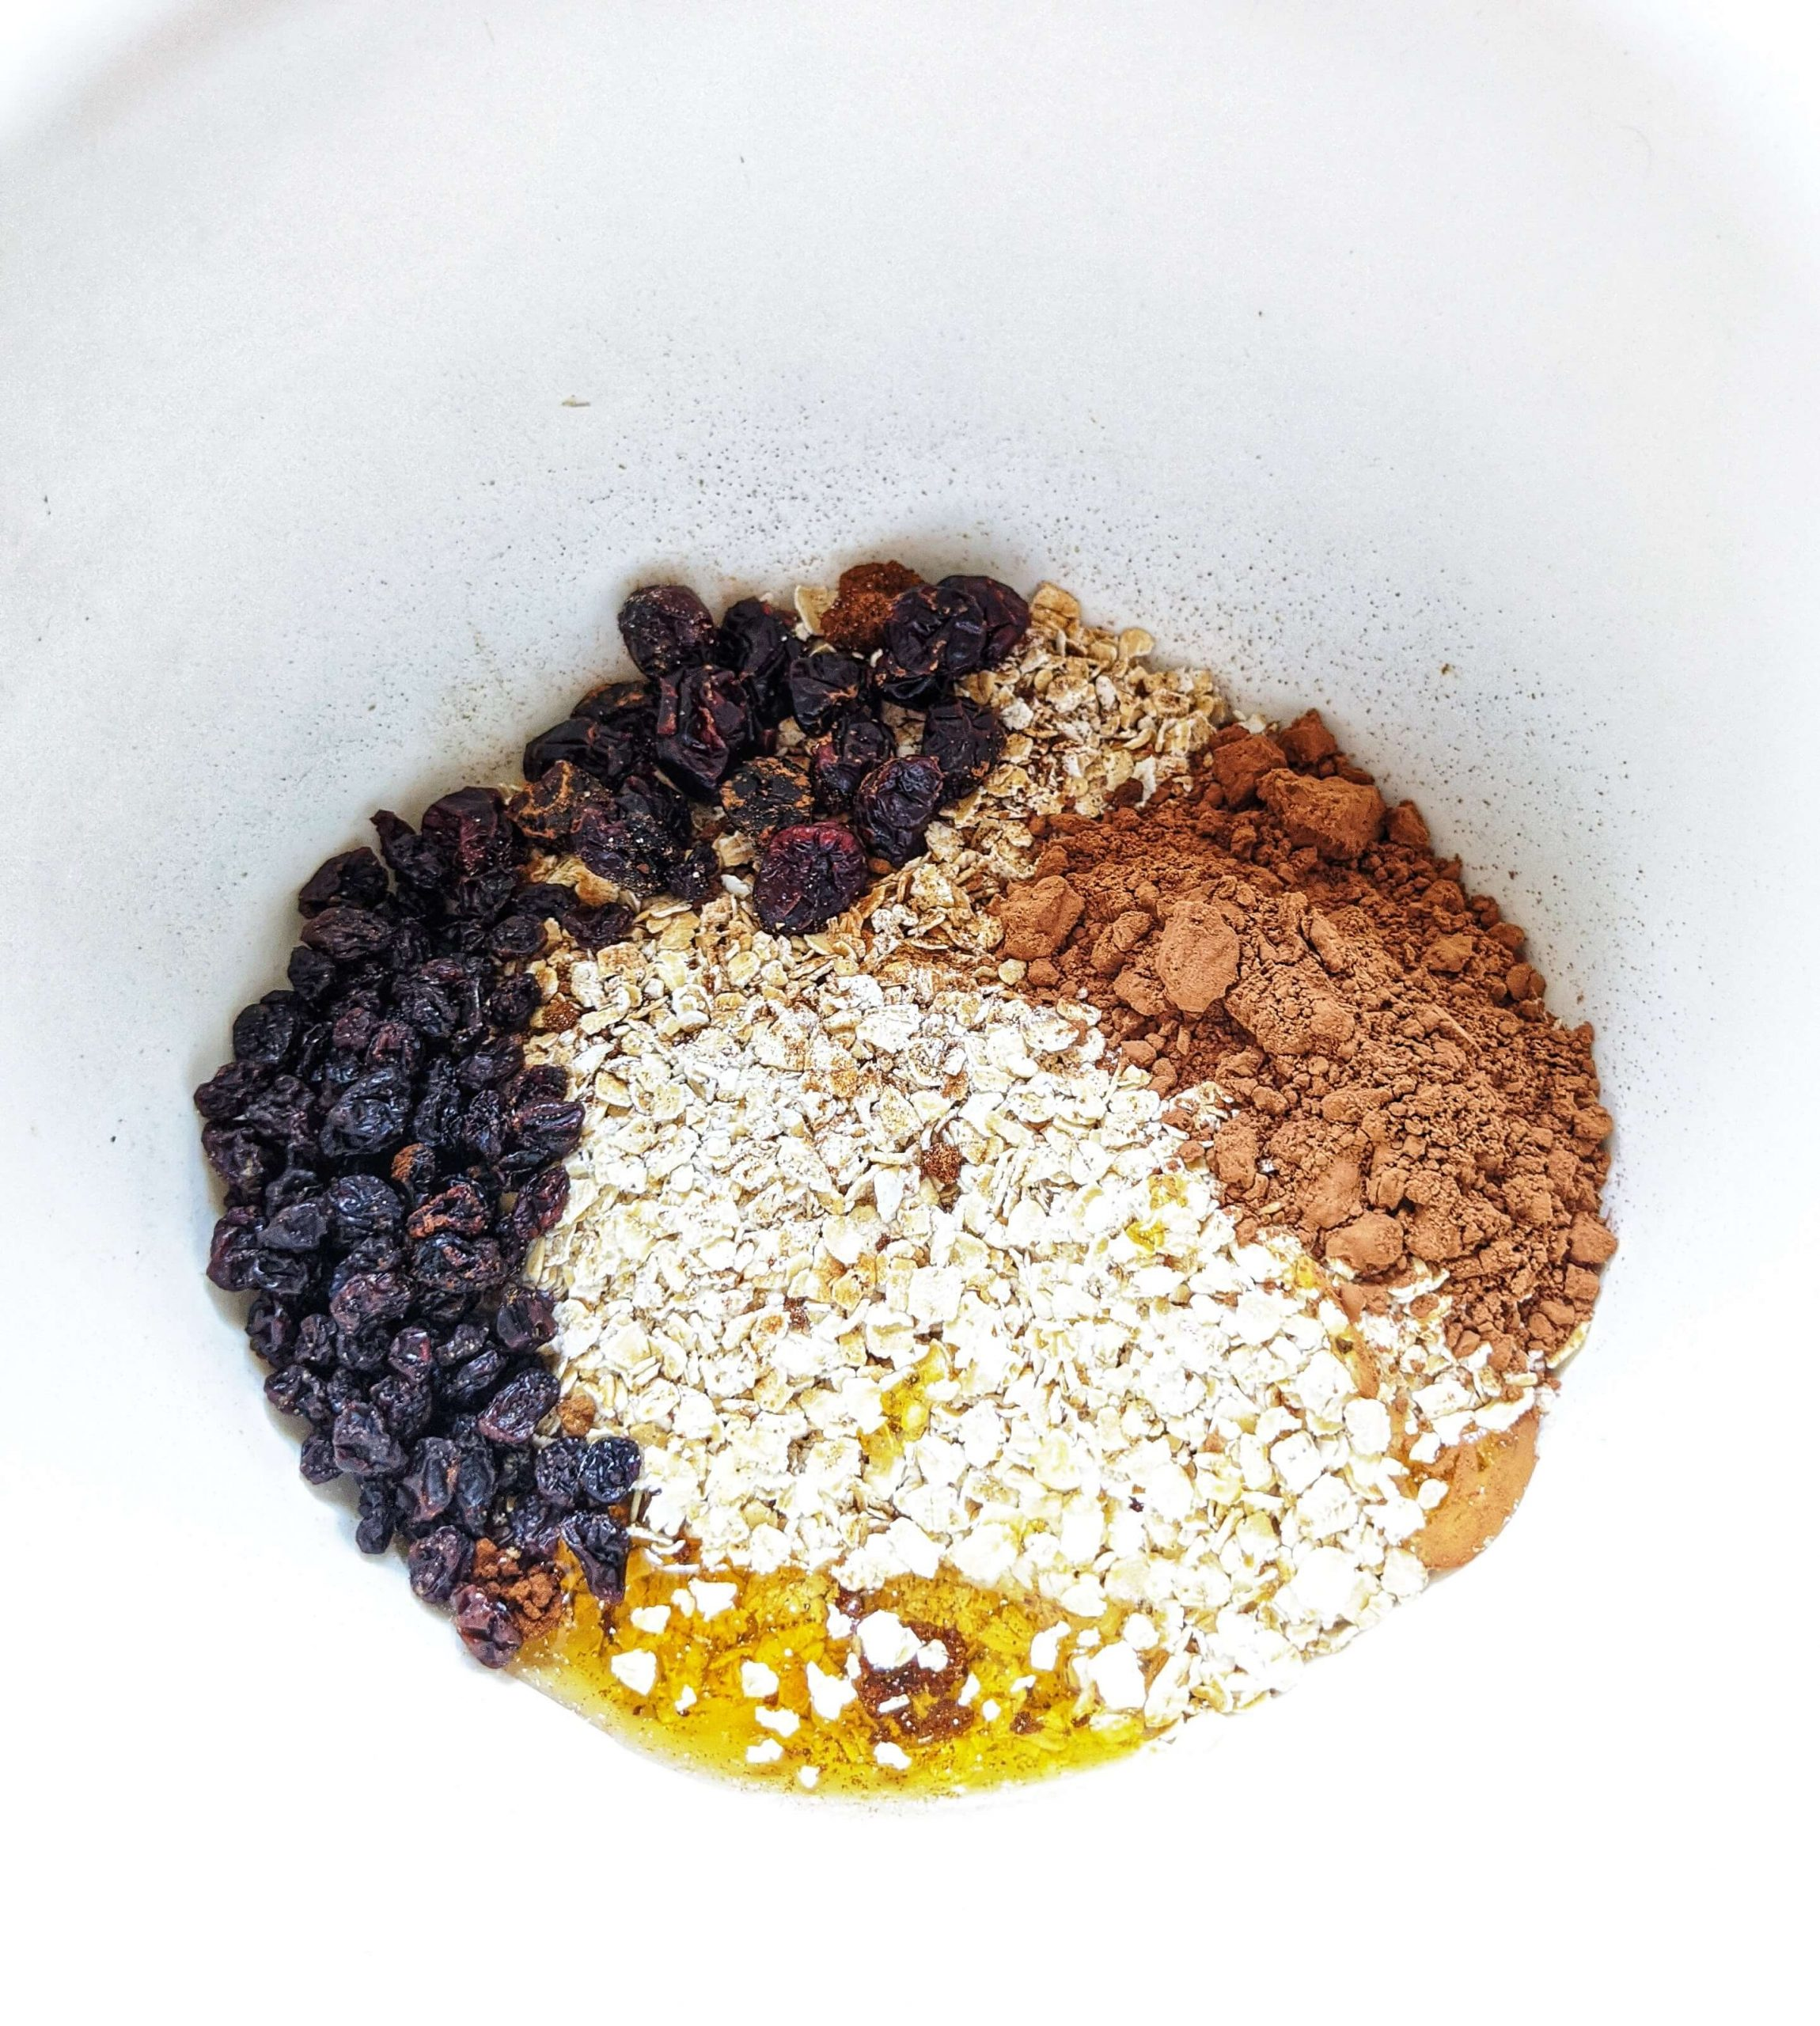 Oats Chocolate Truffle - mixing all the dry ingredients and honey